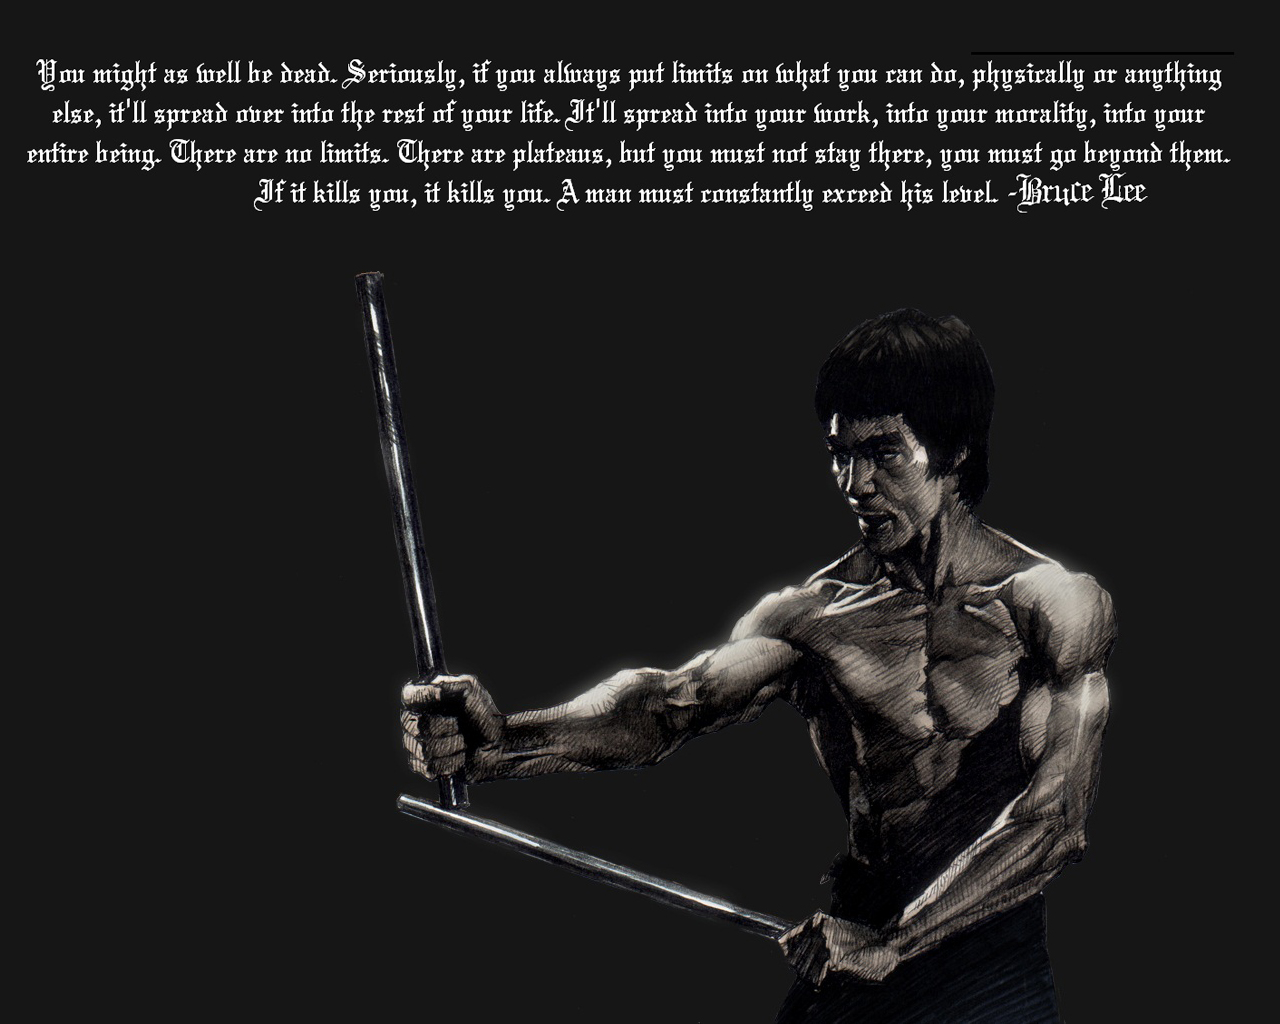 Inspiration bruce lee the legend of martial arts